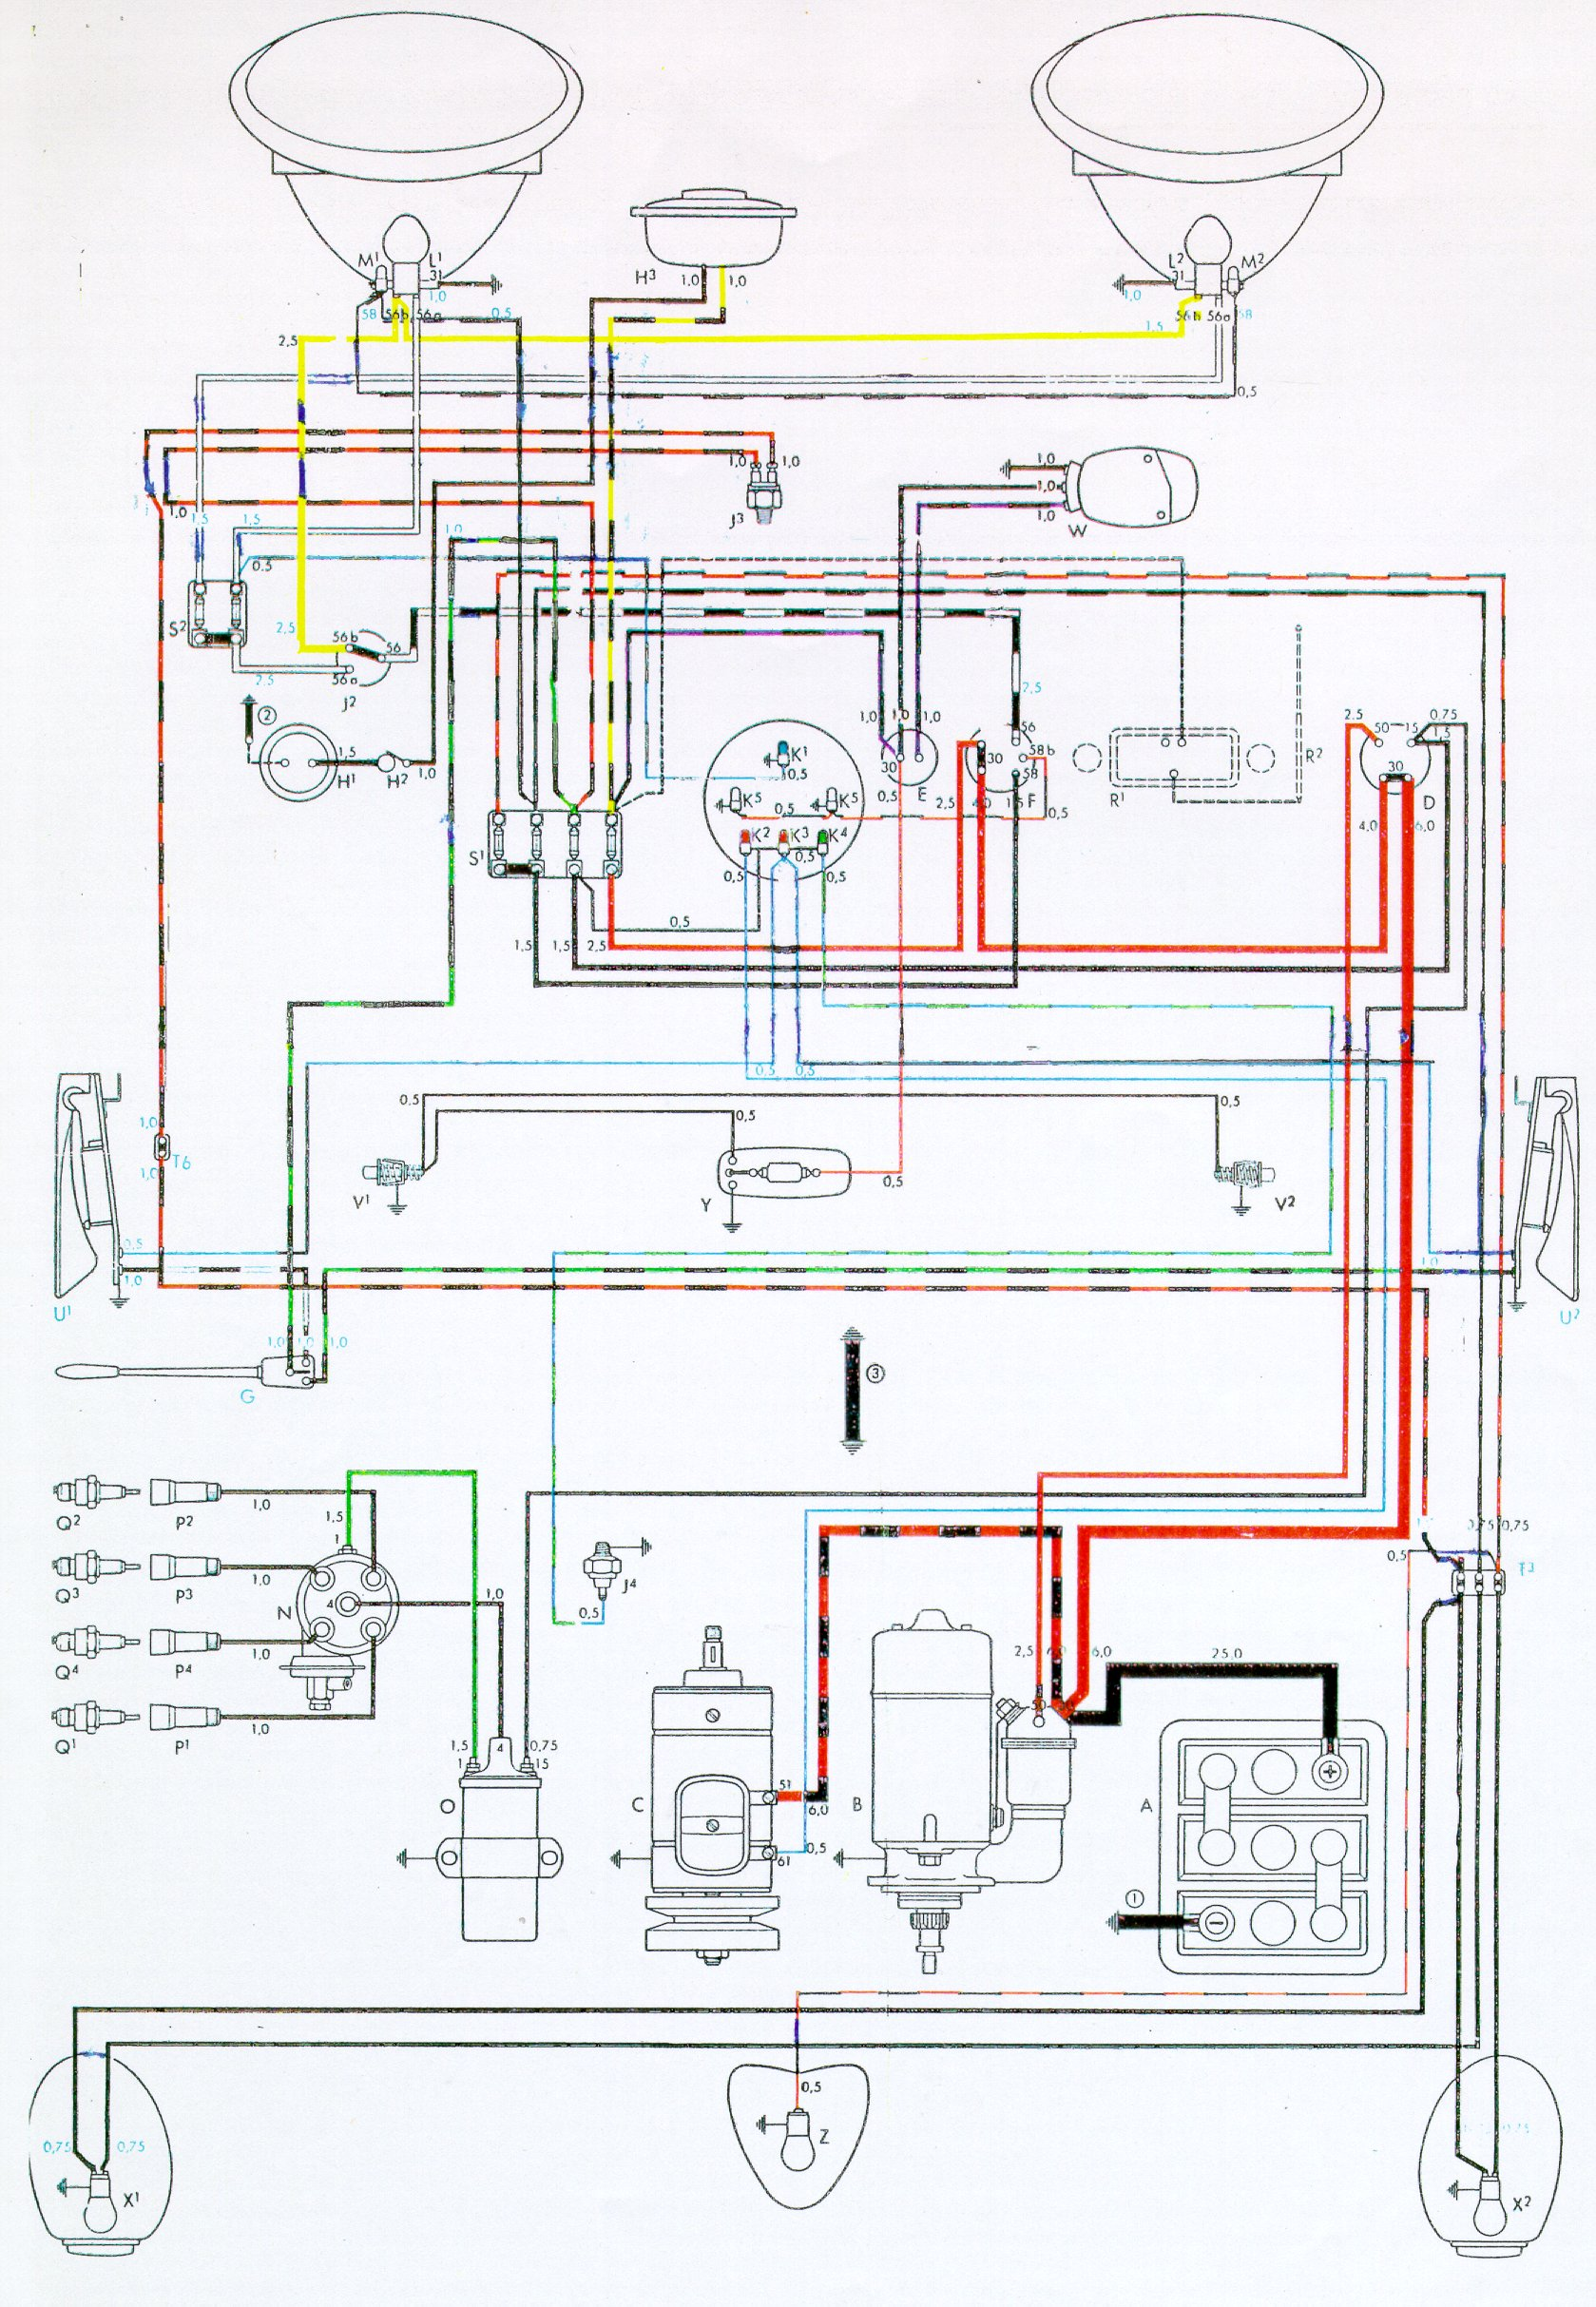 bug 54 vw wiring diagrams 1971 vw beetle wiring diagram at panicattacktreatment.co